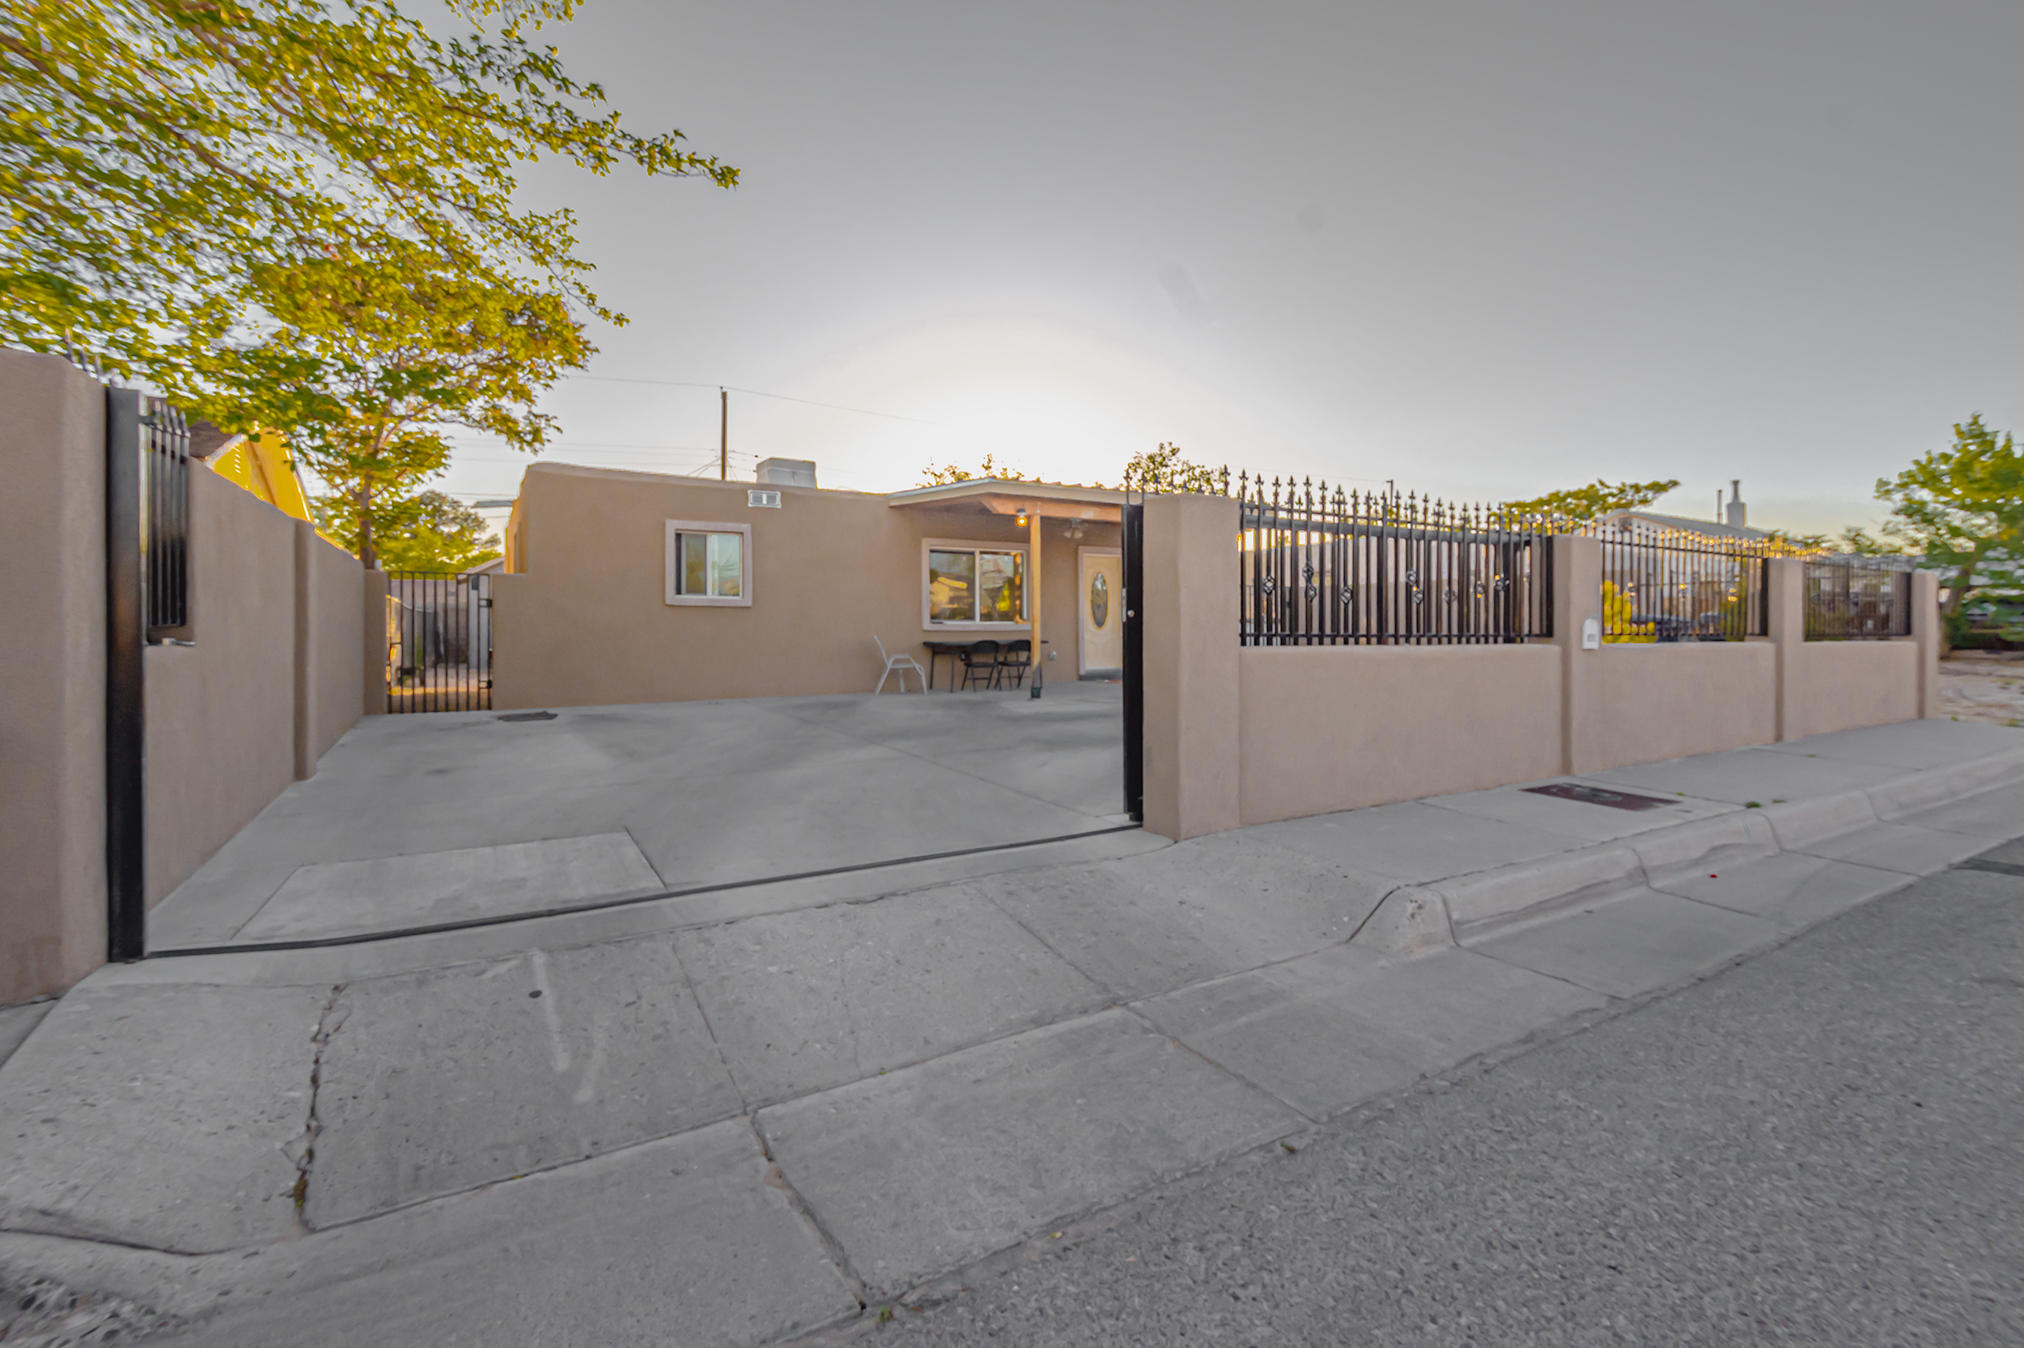 Affordable two bedroom home with back yard access. Close to shopping areas.